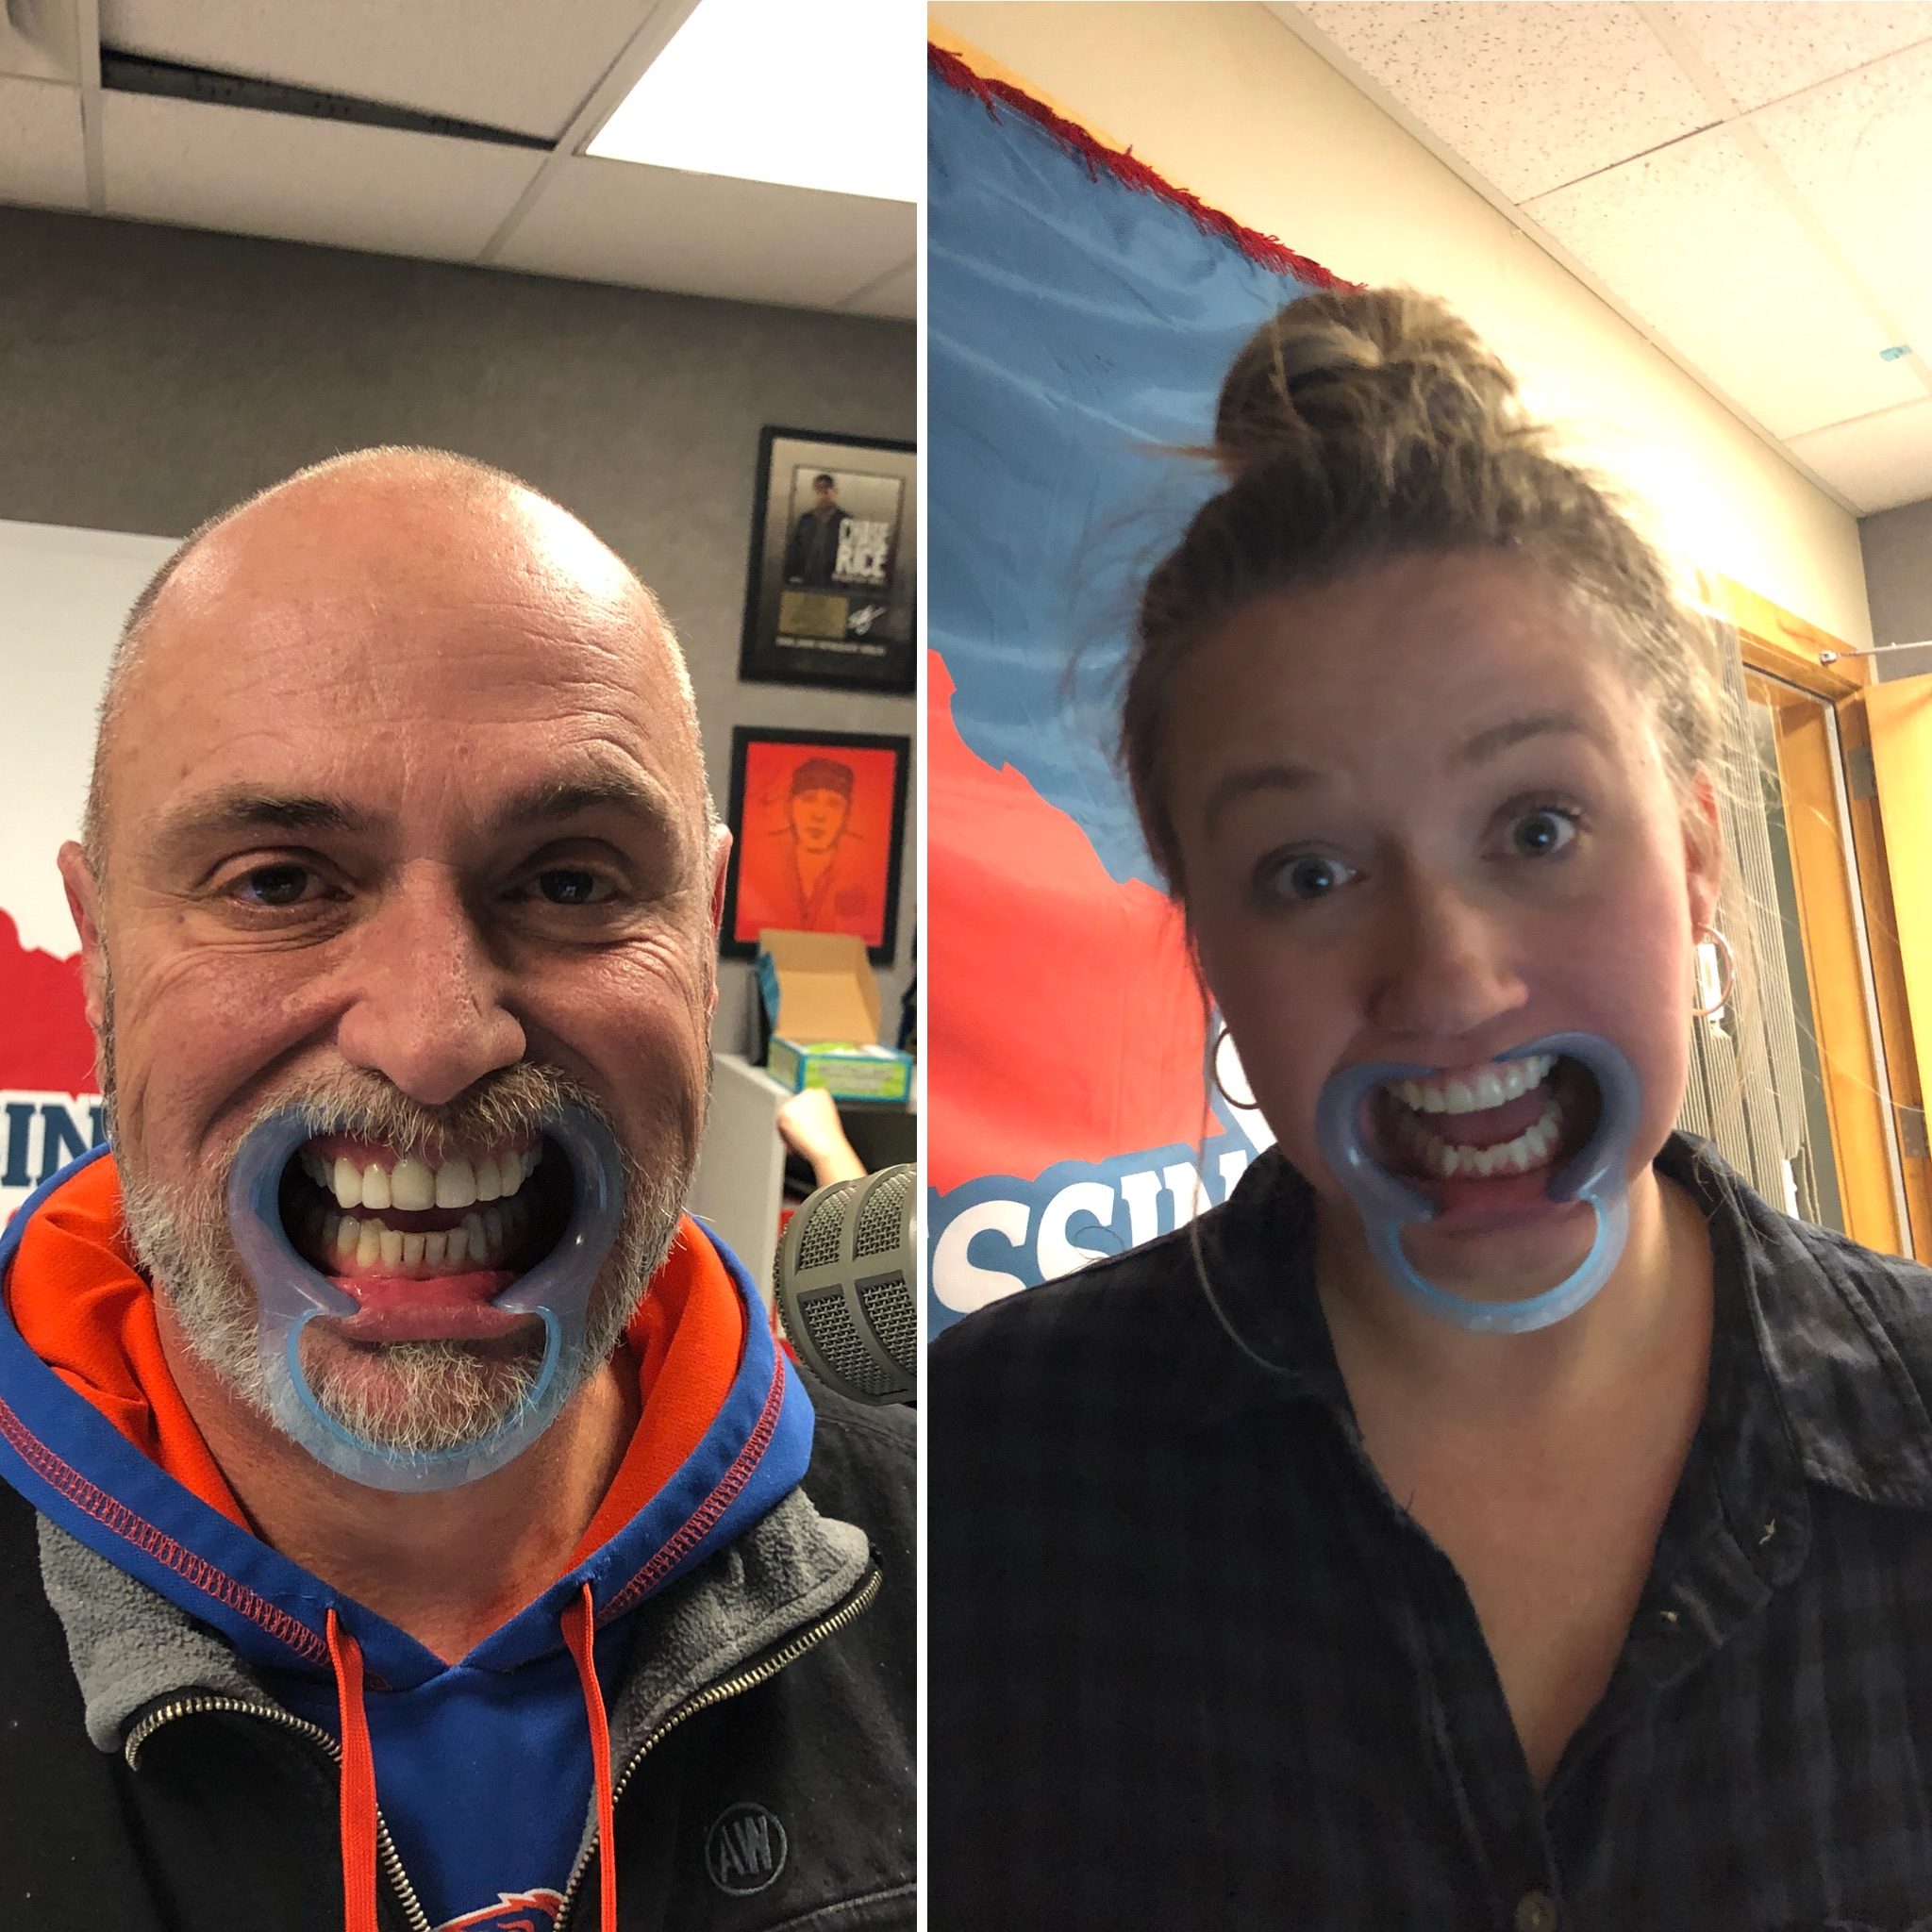 ICYMI: Cory & Shawnda's Mouth Guard Challenge! [VIDEO]